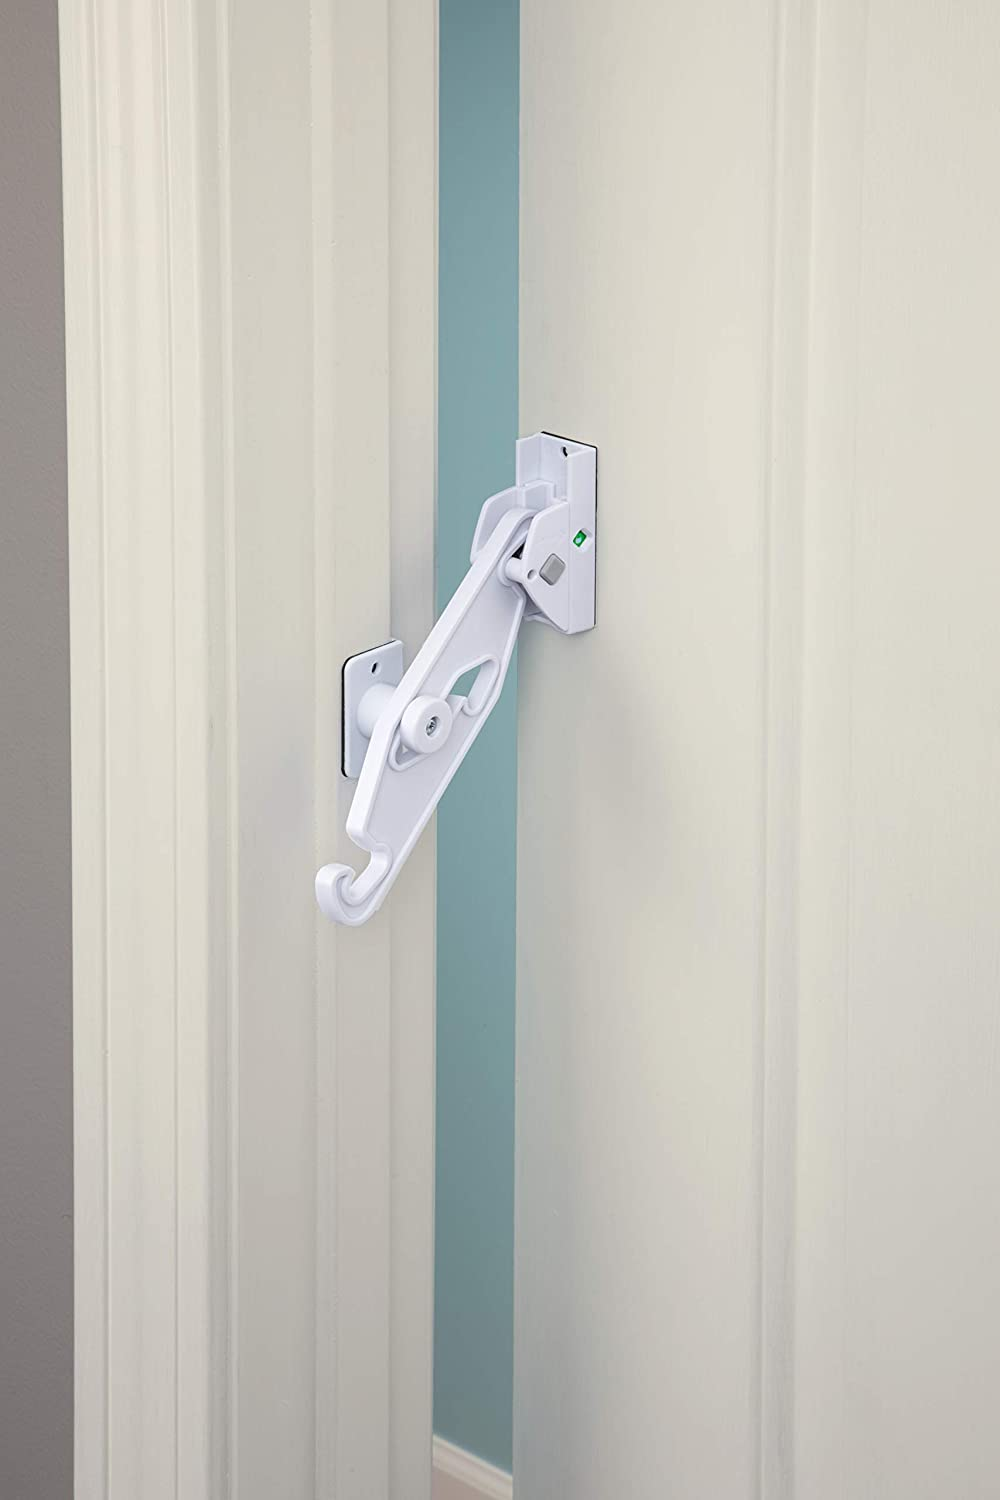 Safety 1st Top of Door Lock for Childproofing